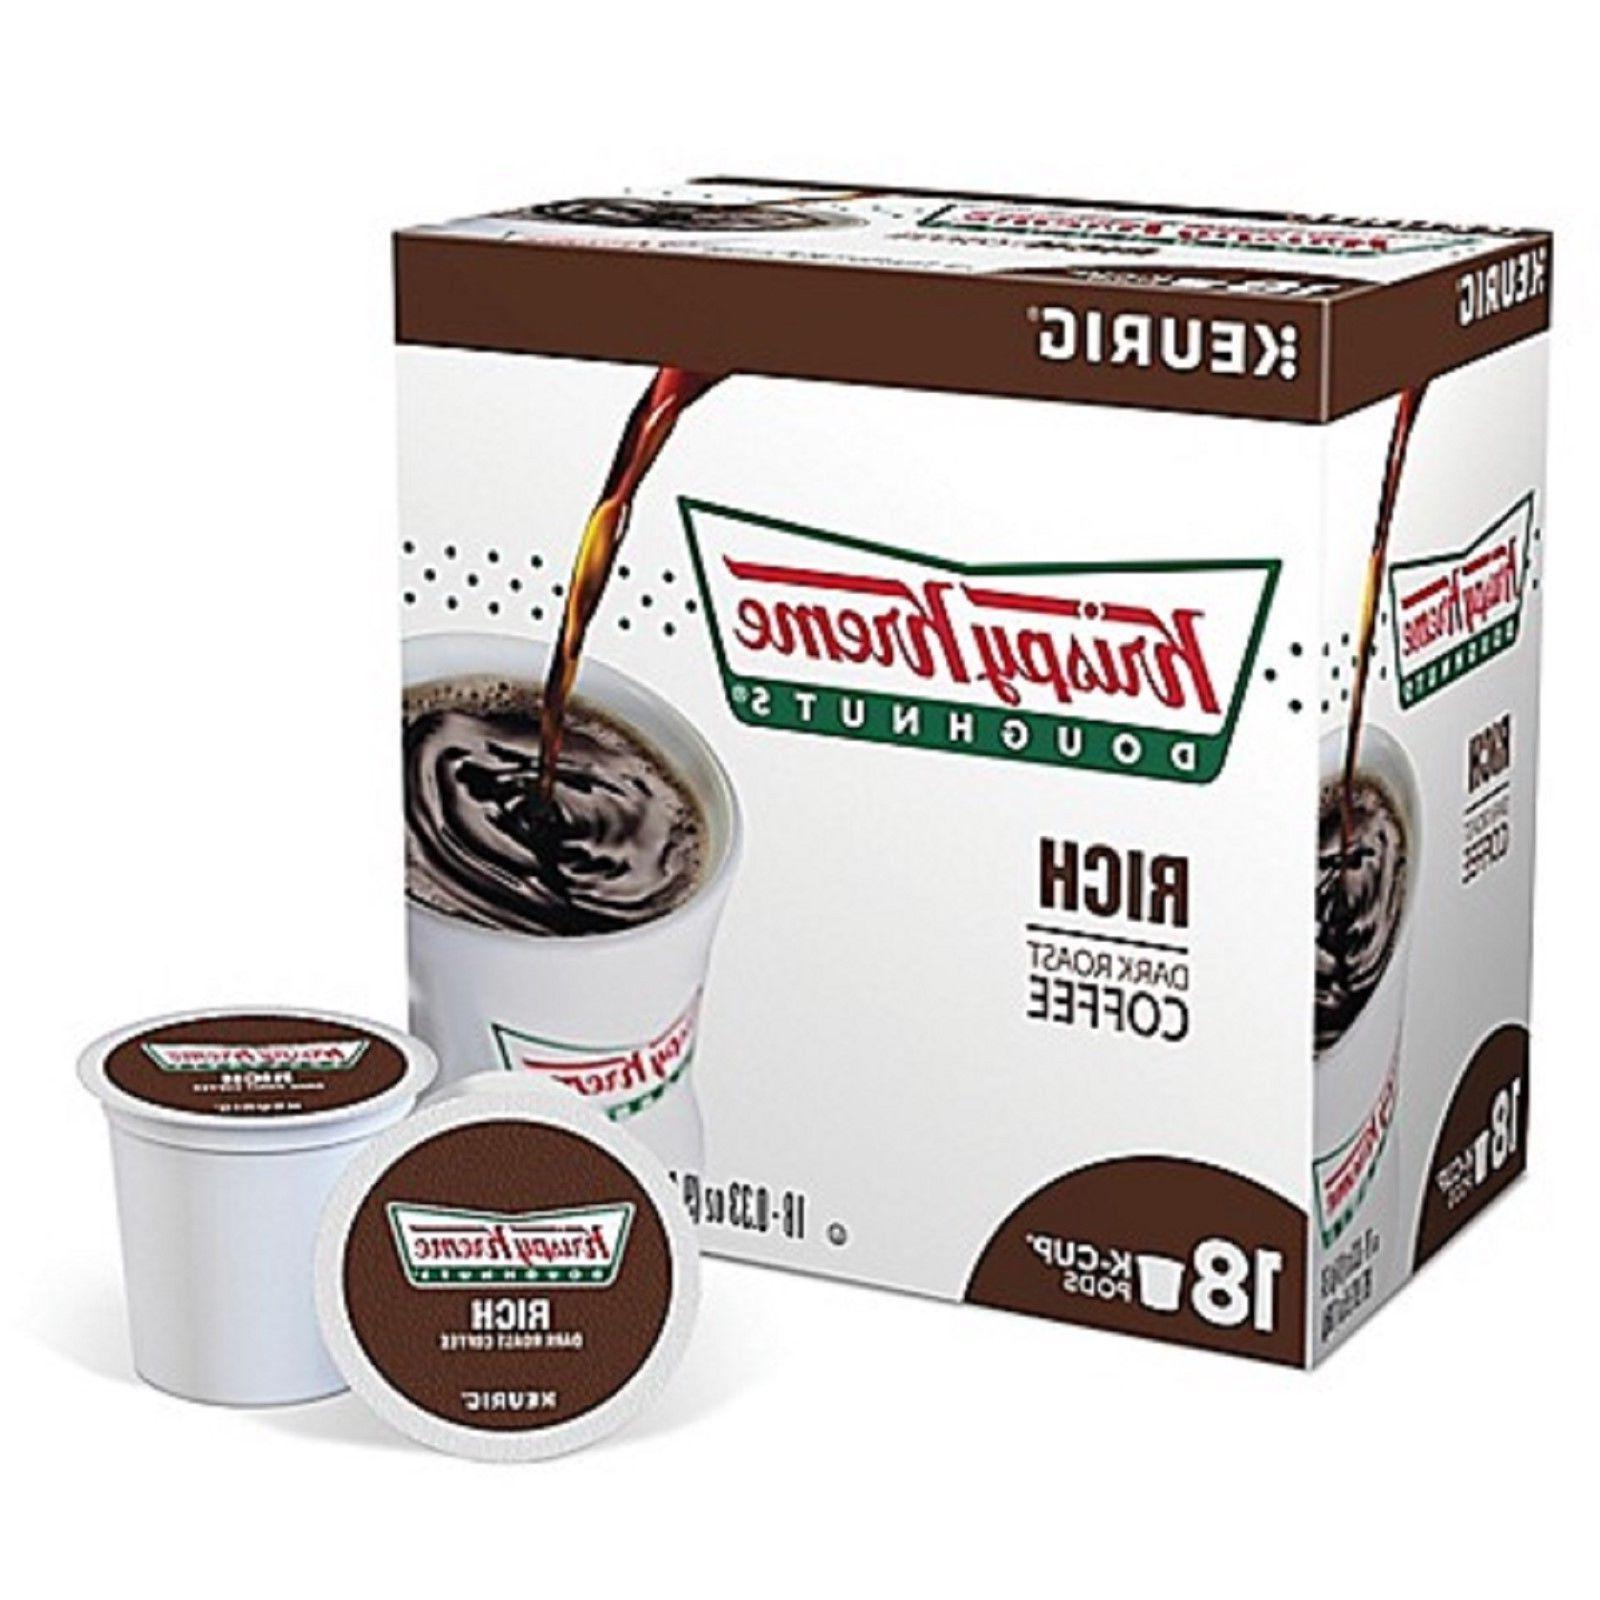 Krispy Kreme Doughnuts Rich Dark Roast Blend Coffee K Cups C